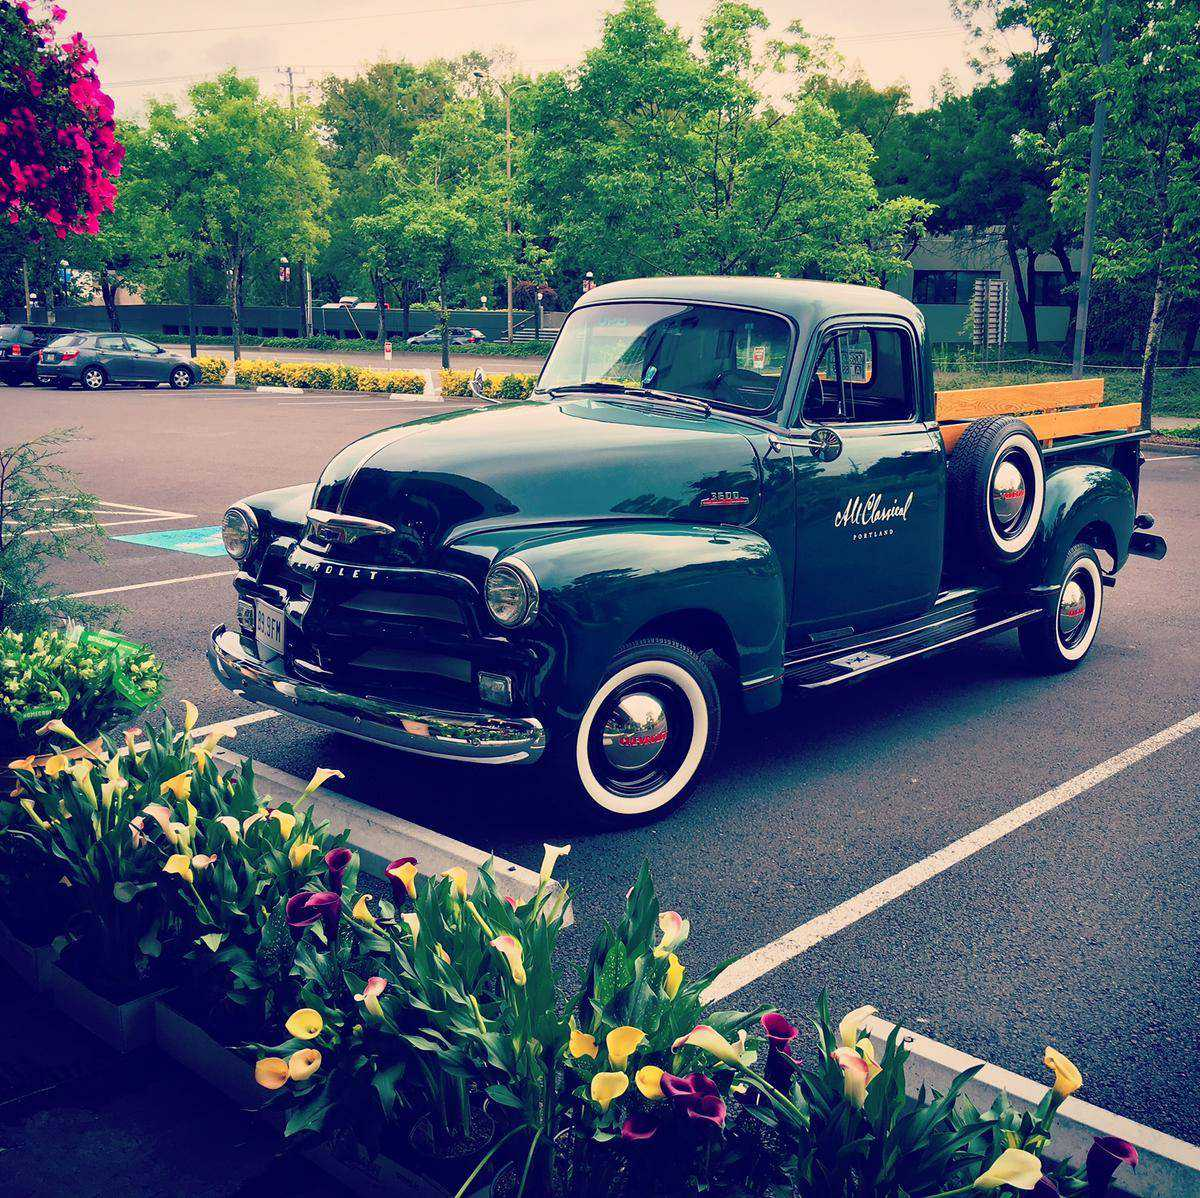 1954 Chevrolet 3600 For Sale In Portland Or J54j024041 Truck Paint Colors